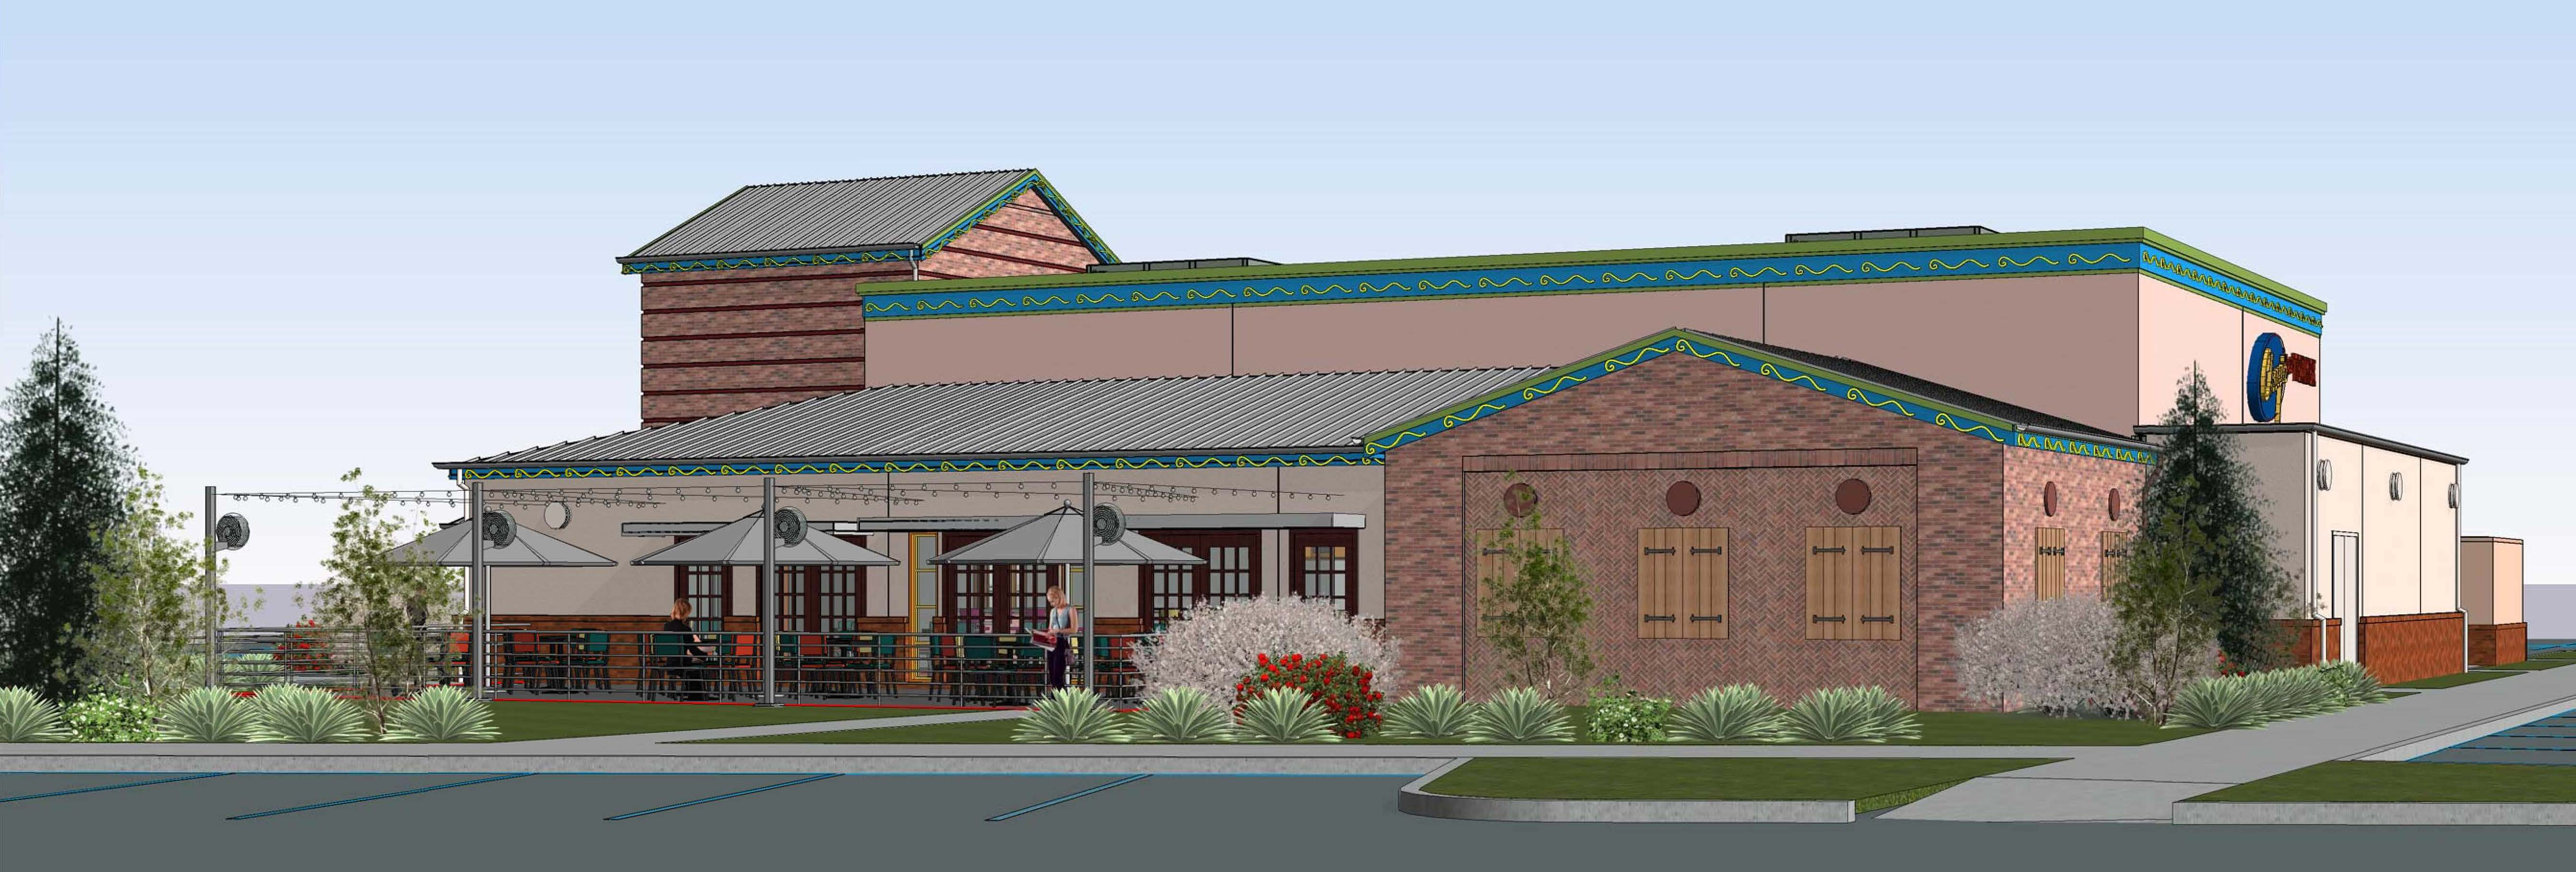 Chuy's Outdoor Patio (Proposed)